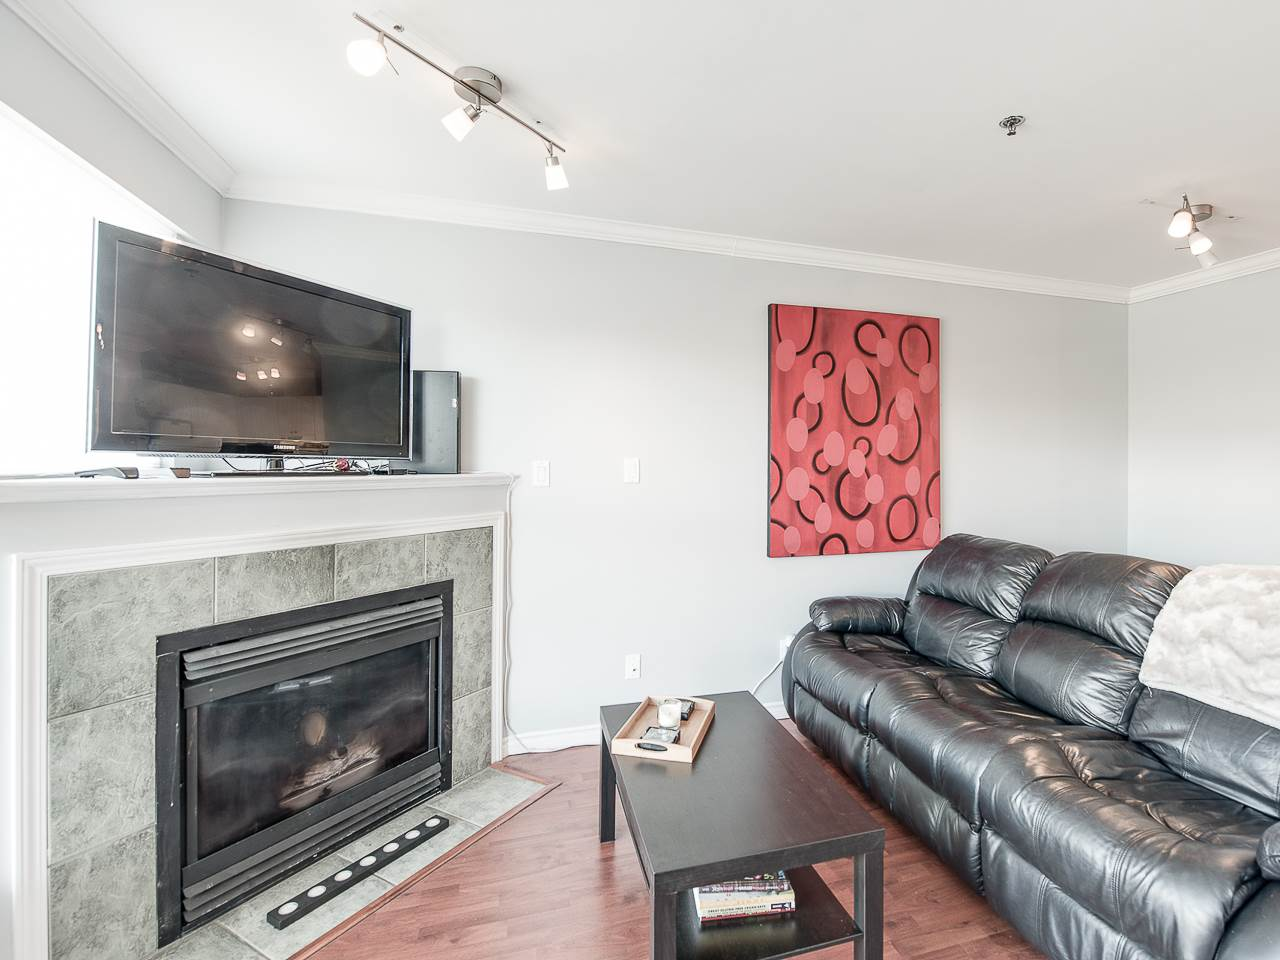 Main Photo: 304 2025 STEPHENS STREET in Vancouver: Kitsilano Condo for sale (Vancouver West)  : MLS® # R2158946